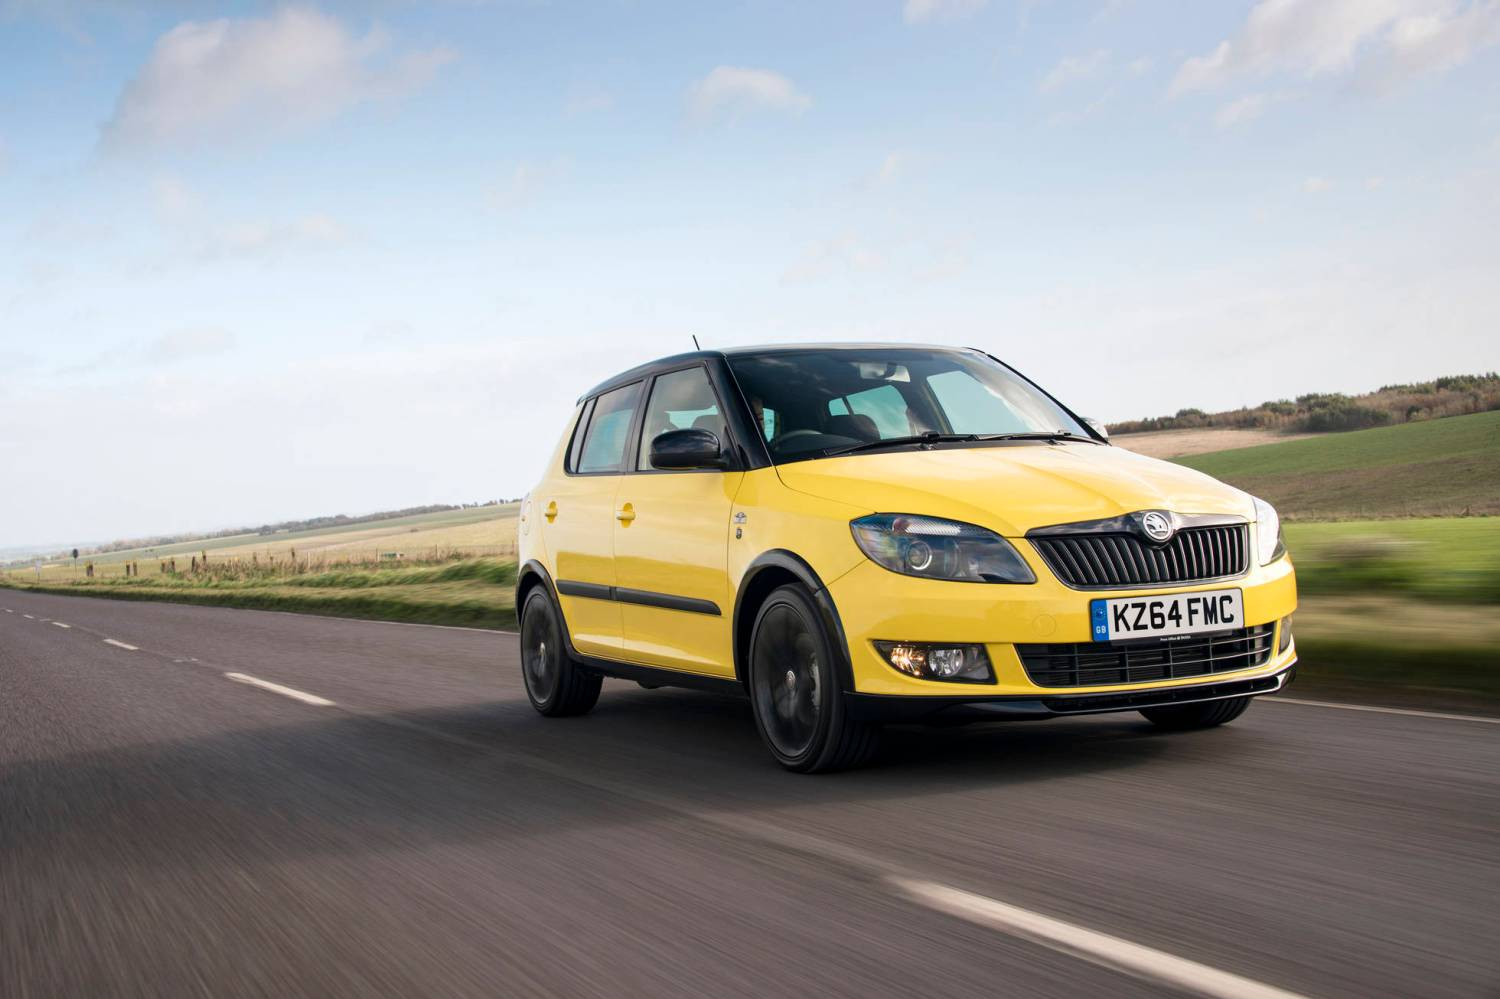 Skoda Fabia No VAT deal